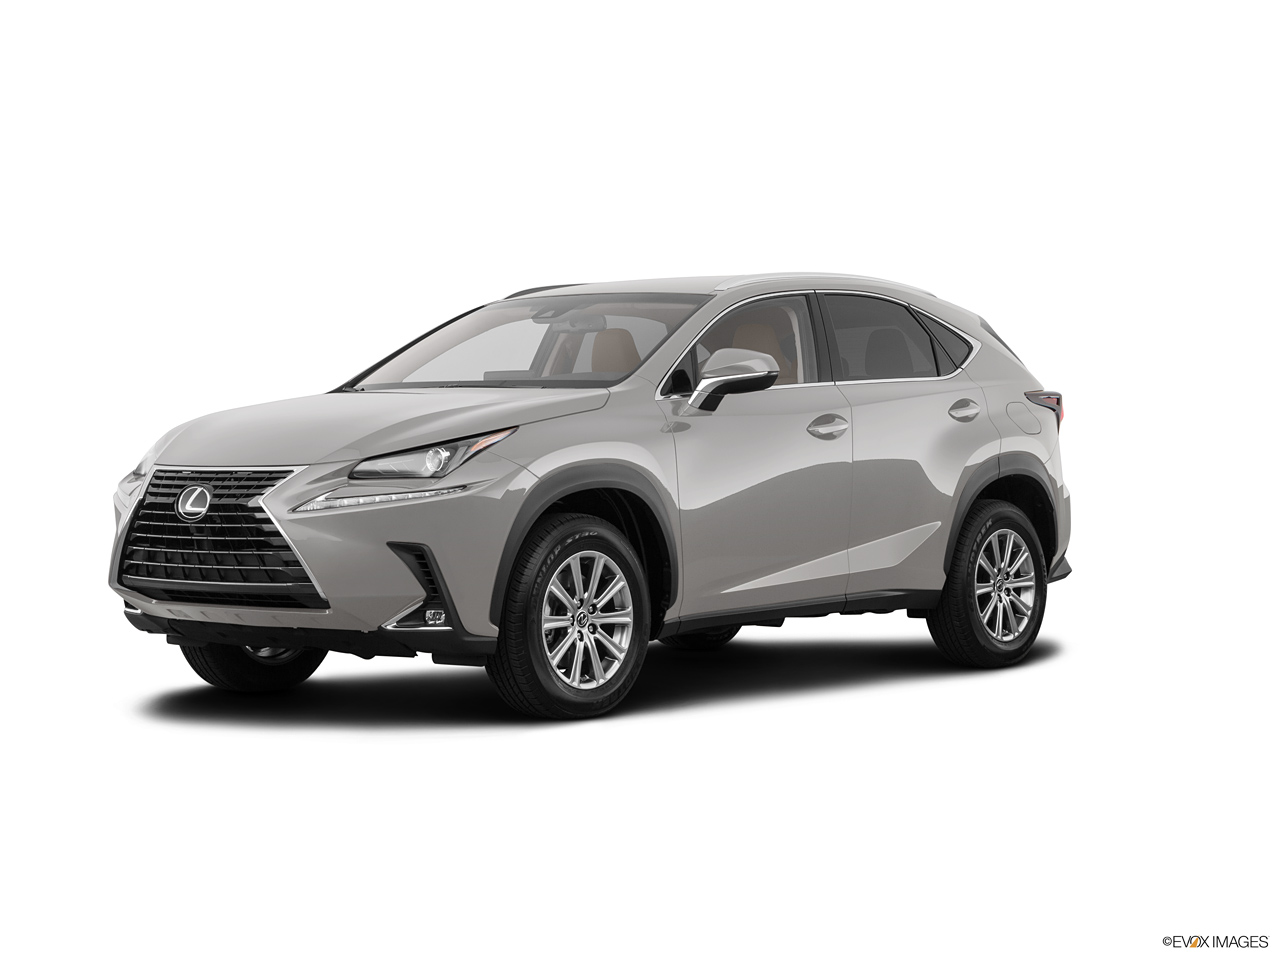 Mazda Lease Specials >> Lexus Lease Takeover in Toronto, ON: 2019 Lexus NX300 Manual AWD ID:#4476 • LeaseCosts Canada